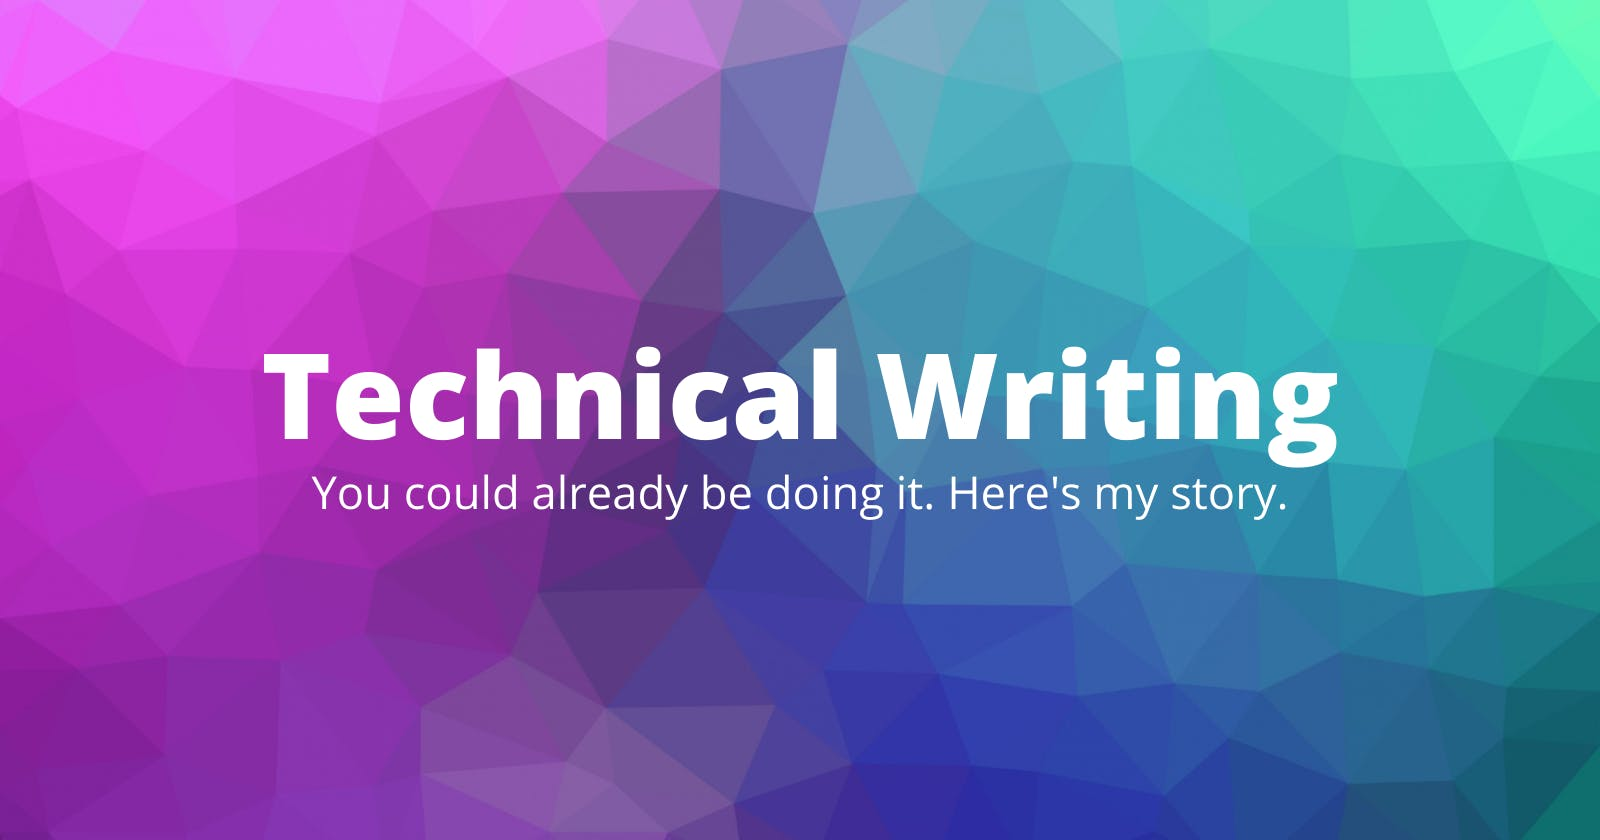 Are you already a technical writer? Here's my story.